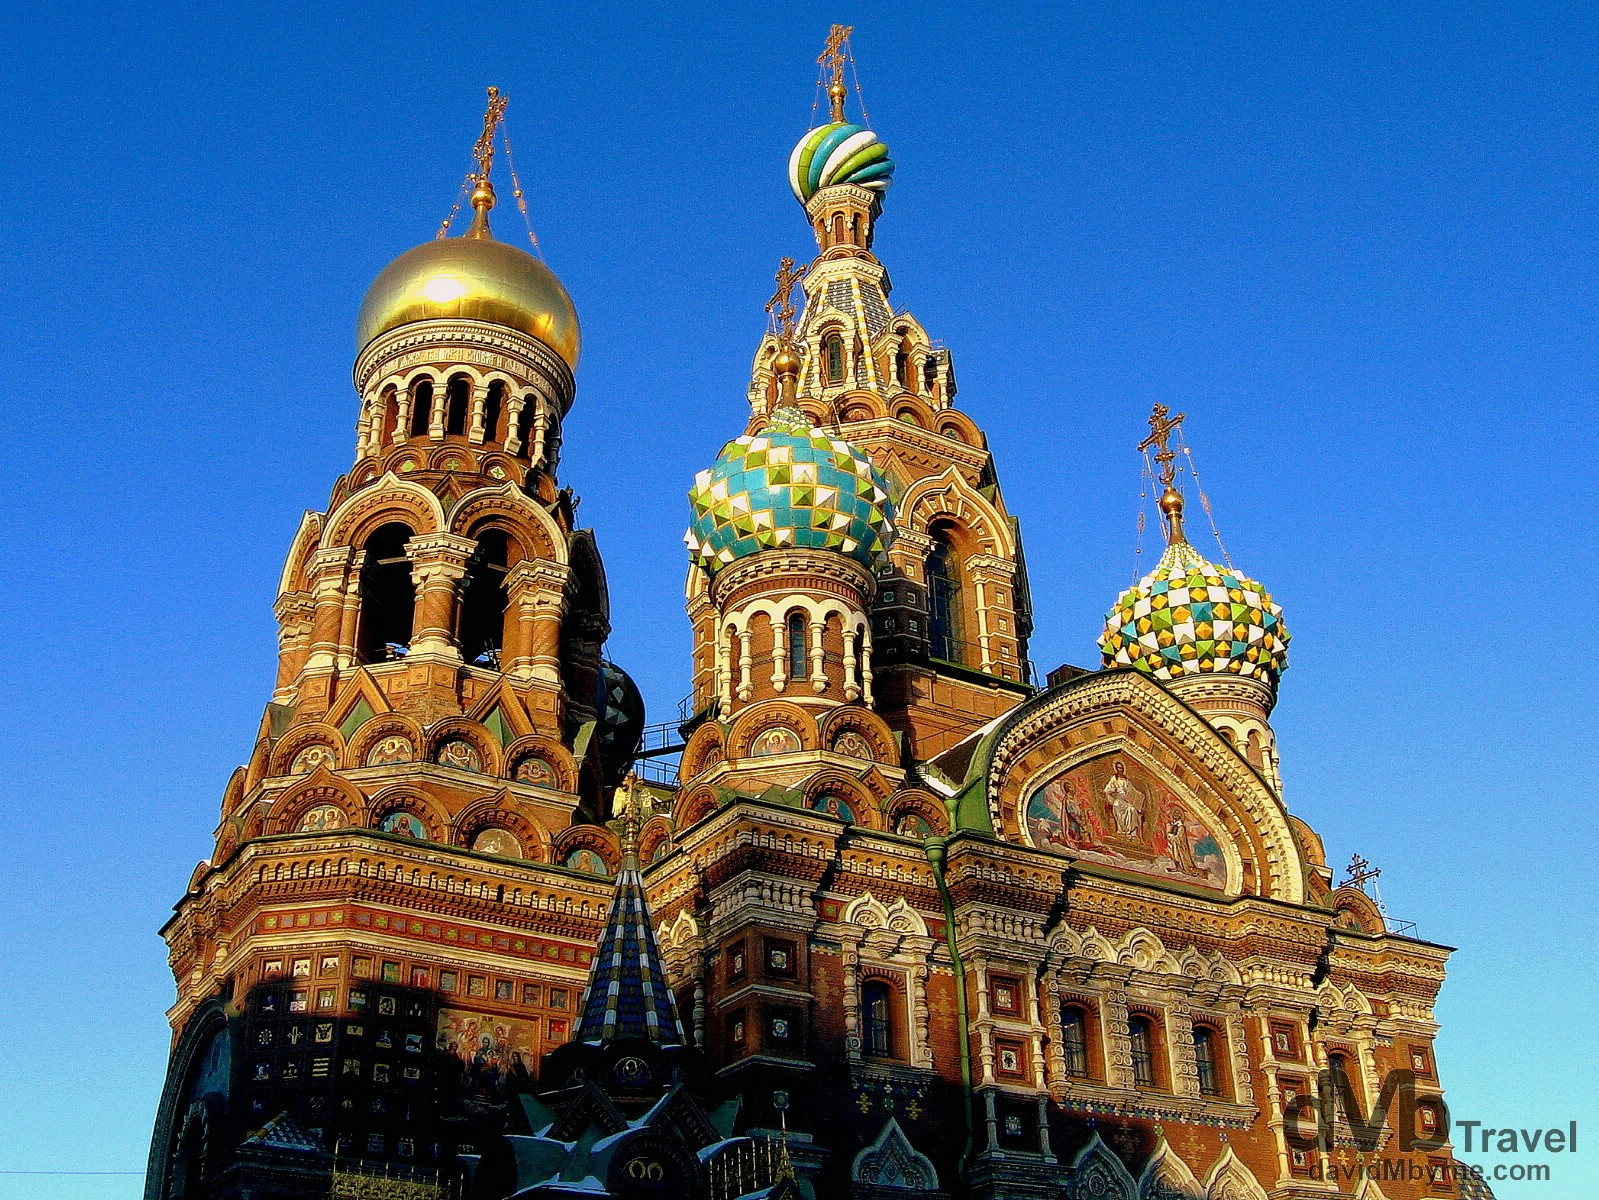 Church of the Savior on Spilled Blood, St. Petersburg, Russia. February 27, 2006.